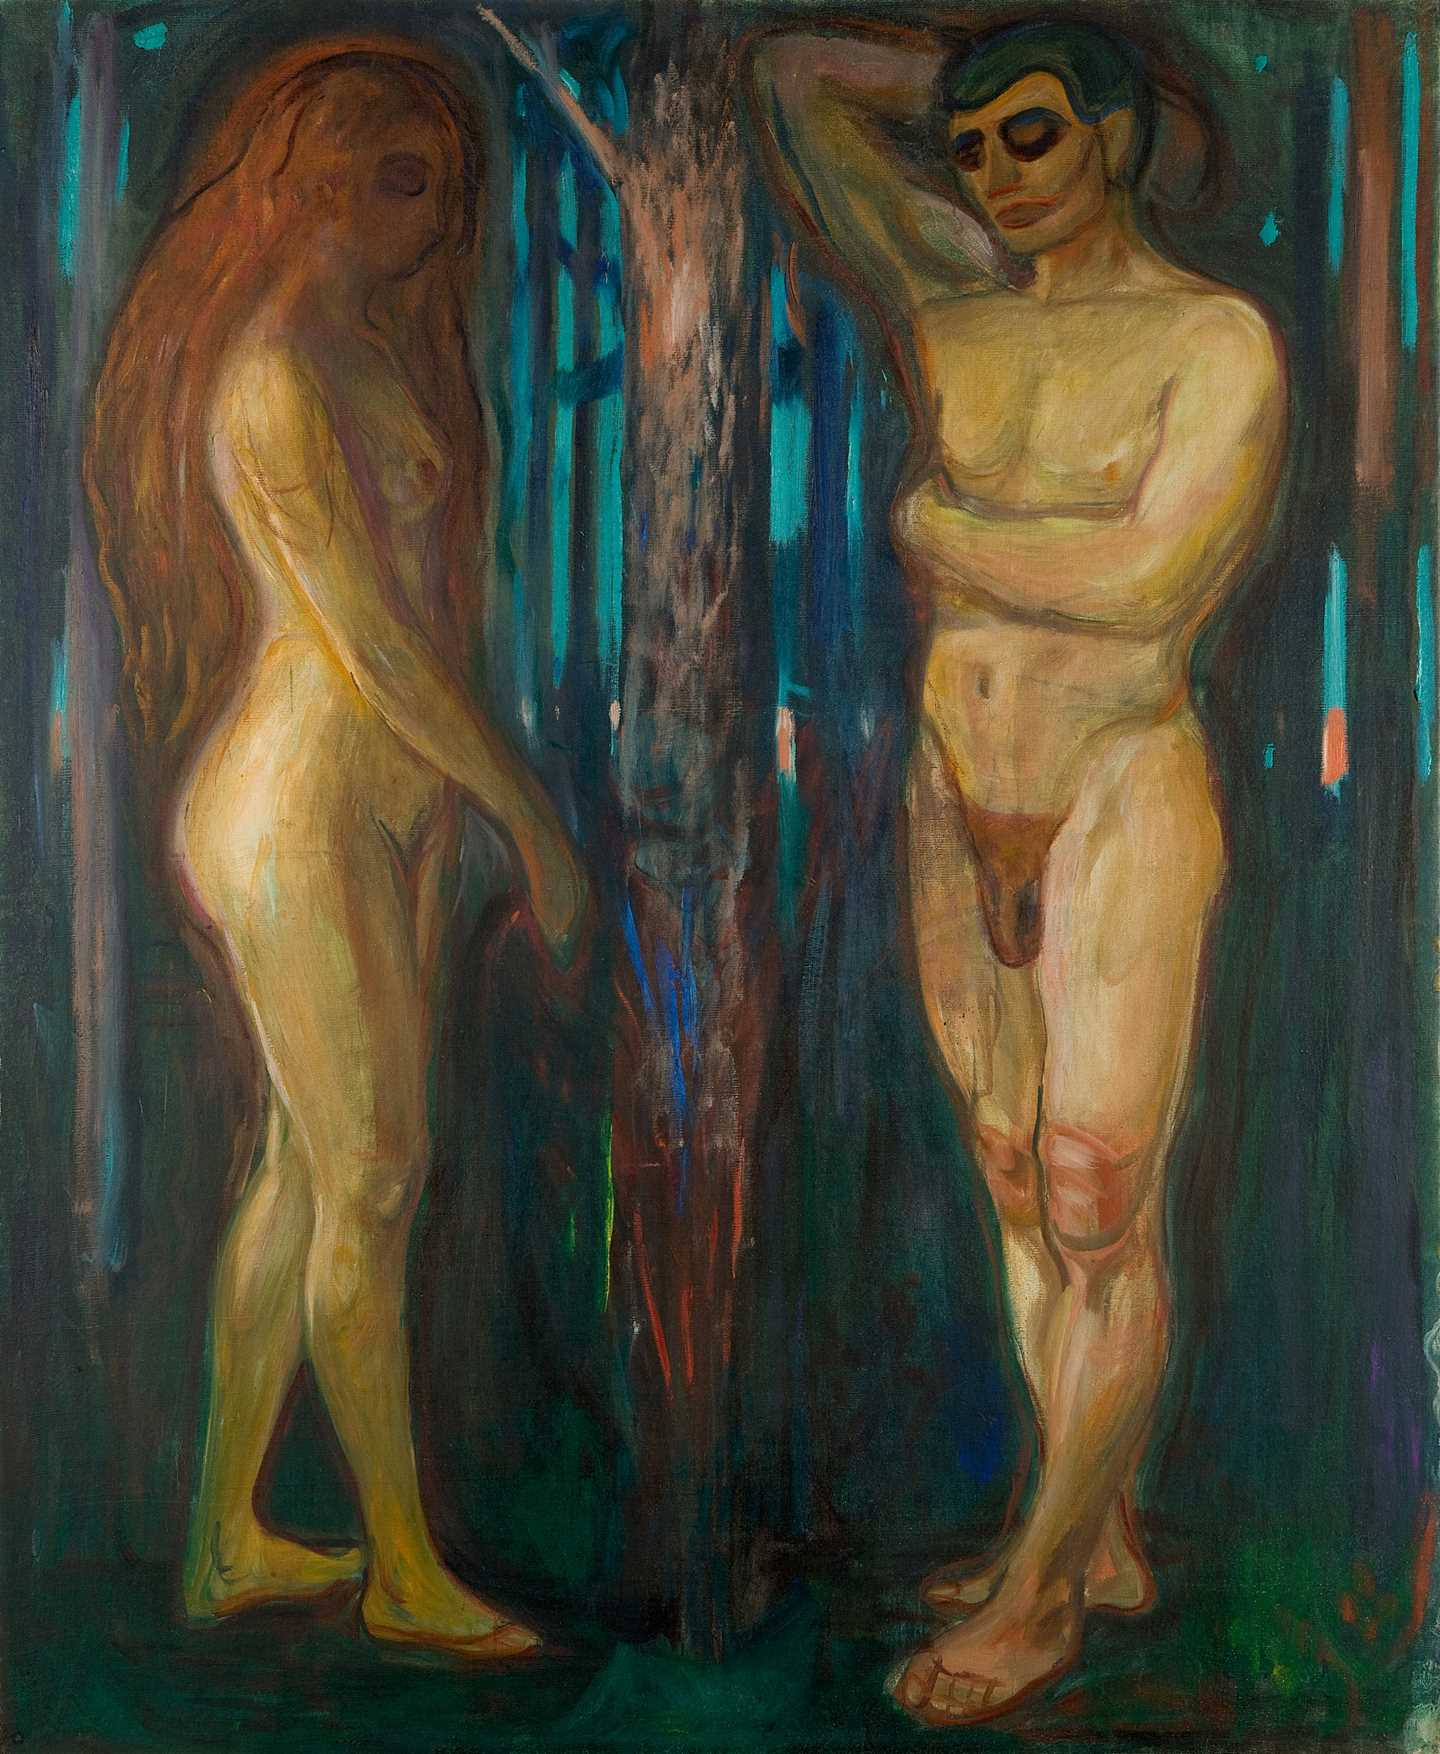 Edvard Munch: Metabolism. Oil on canvas, 1898–1899. Photo © Munchmuseet